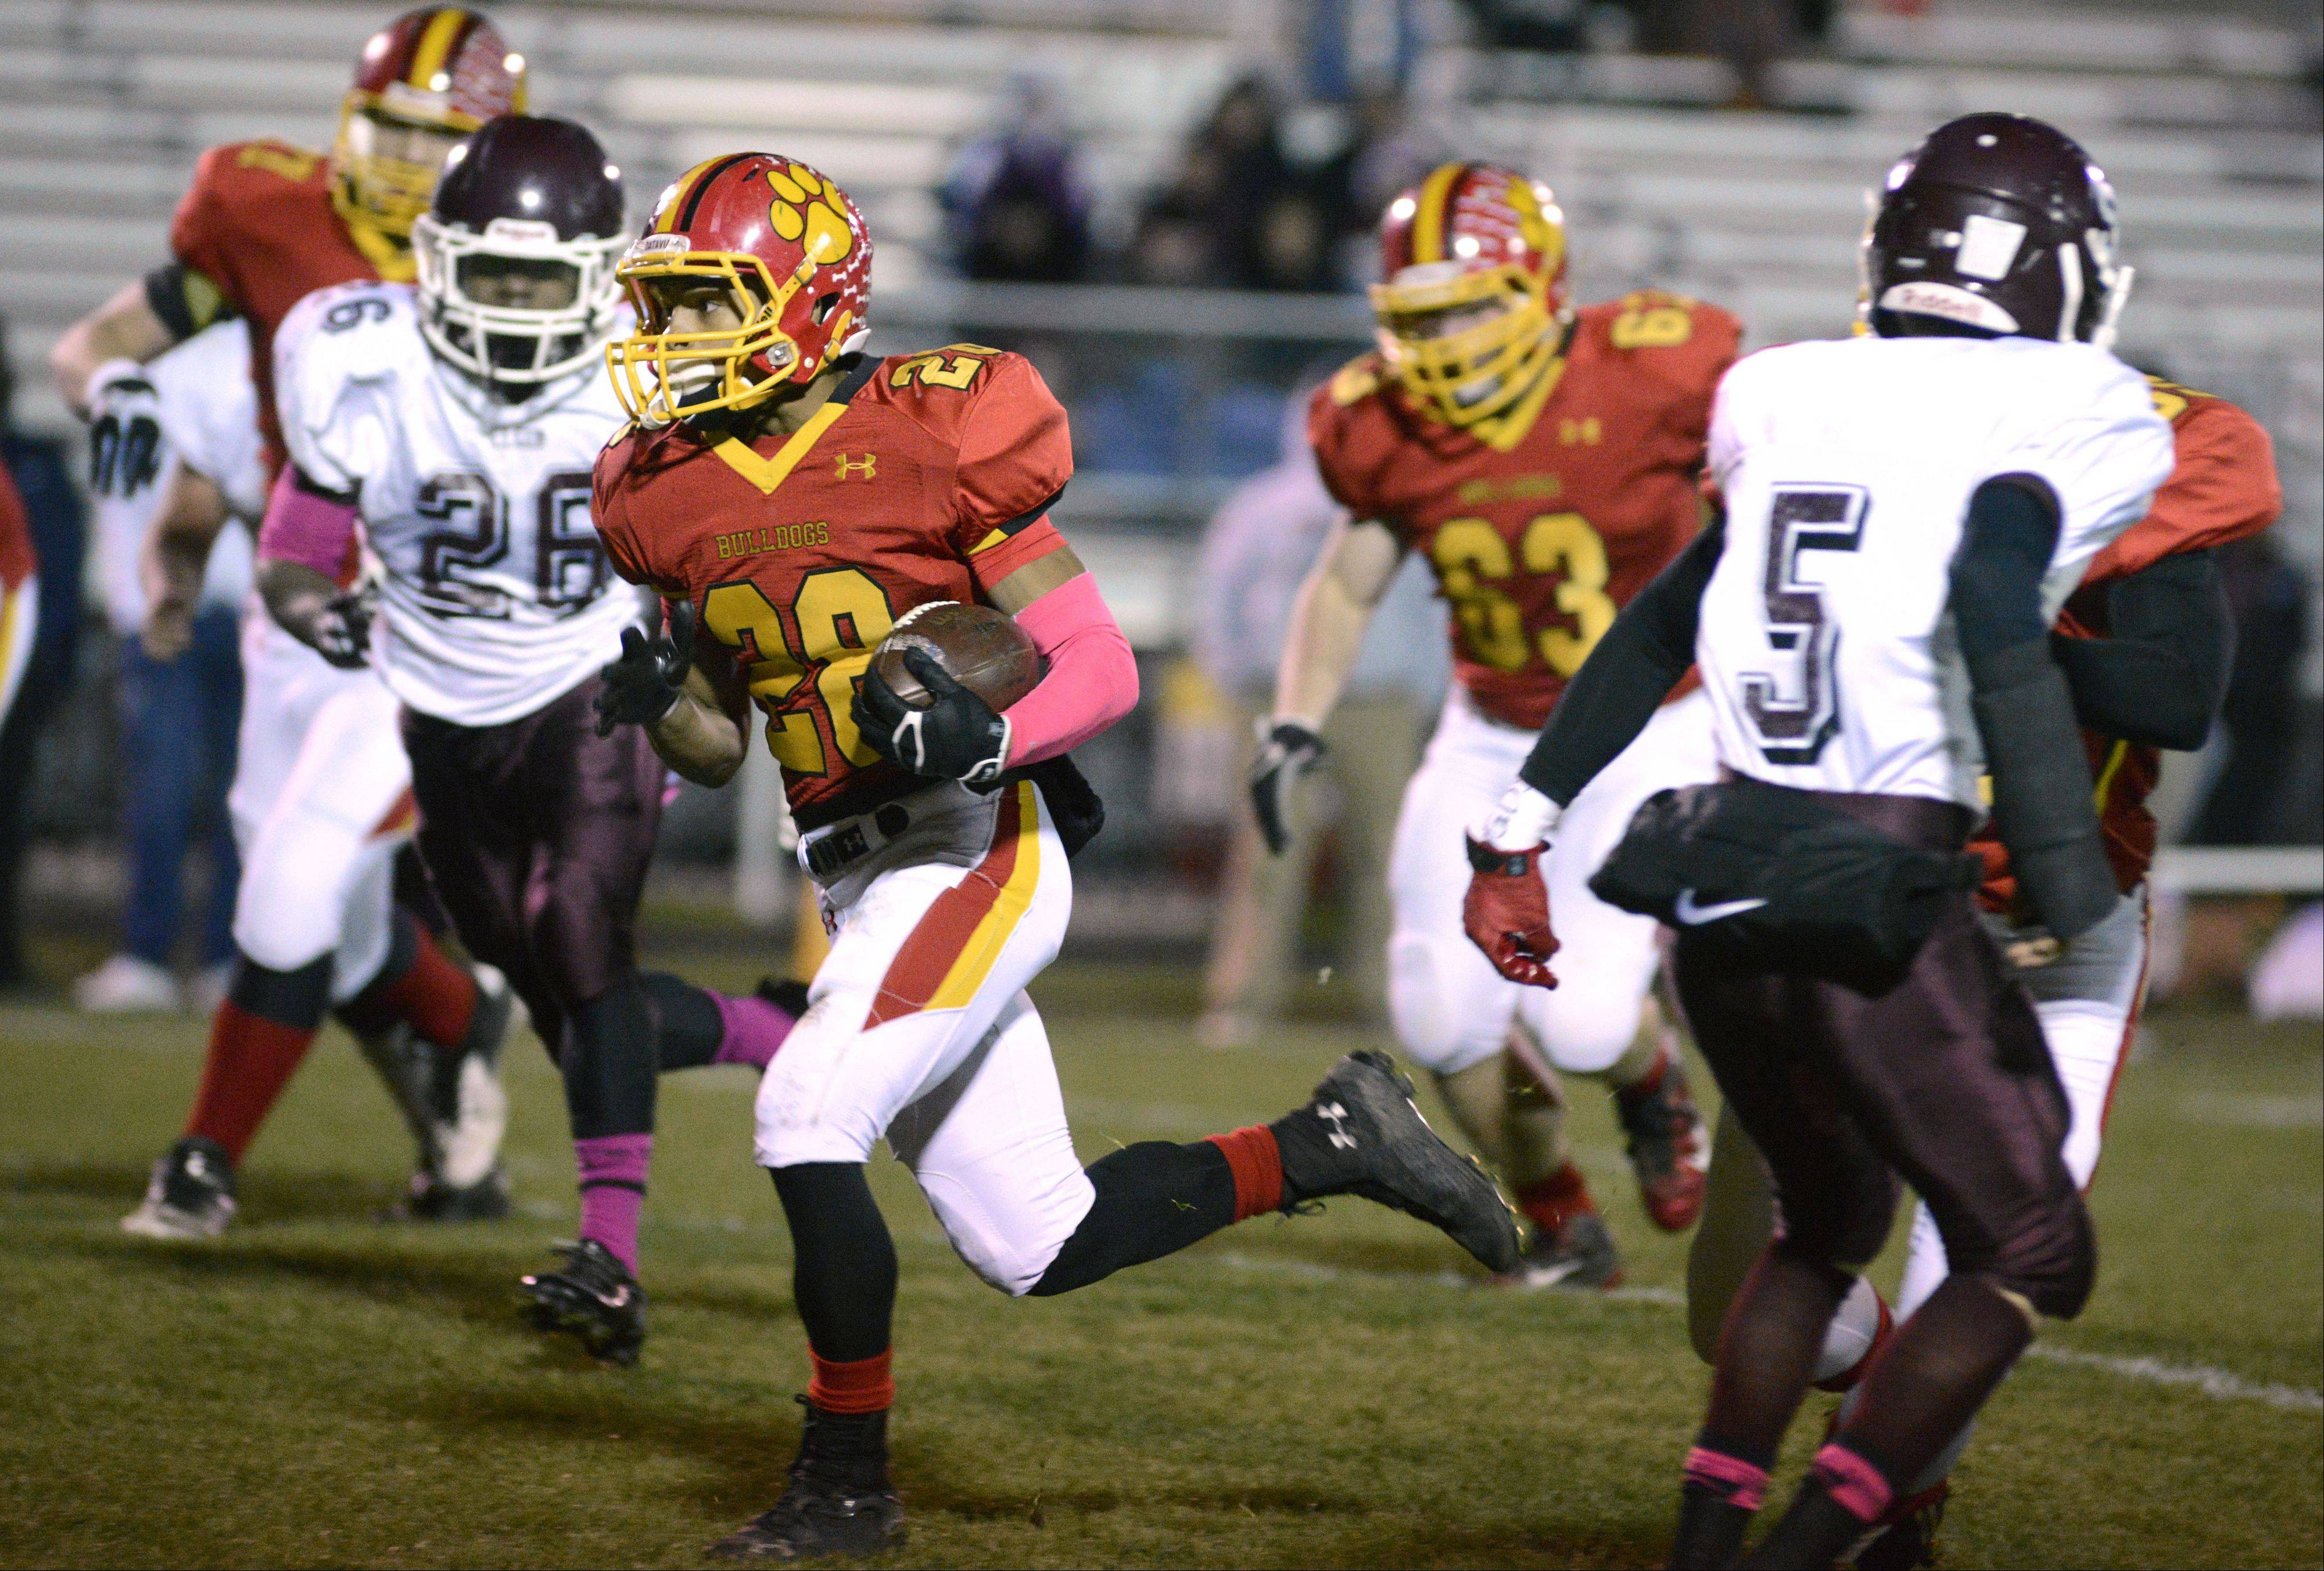 Batavia's Anthony Scaccia makes his way down to scoring a touchdown in the first quarter vs. Elgin on Friday, October 25.